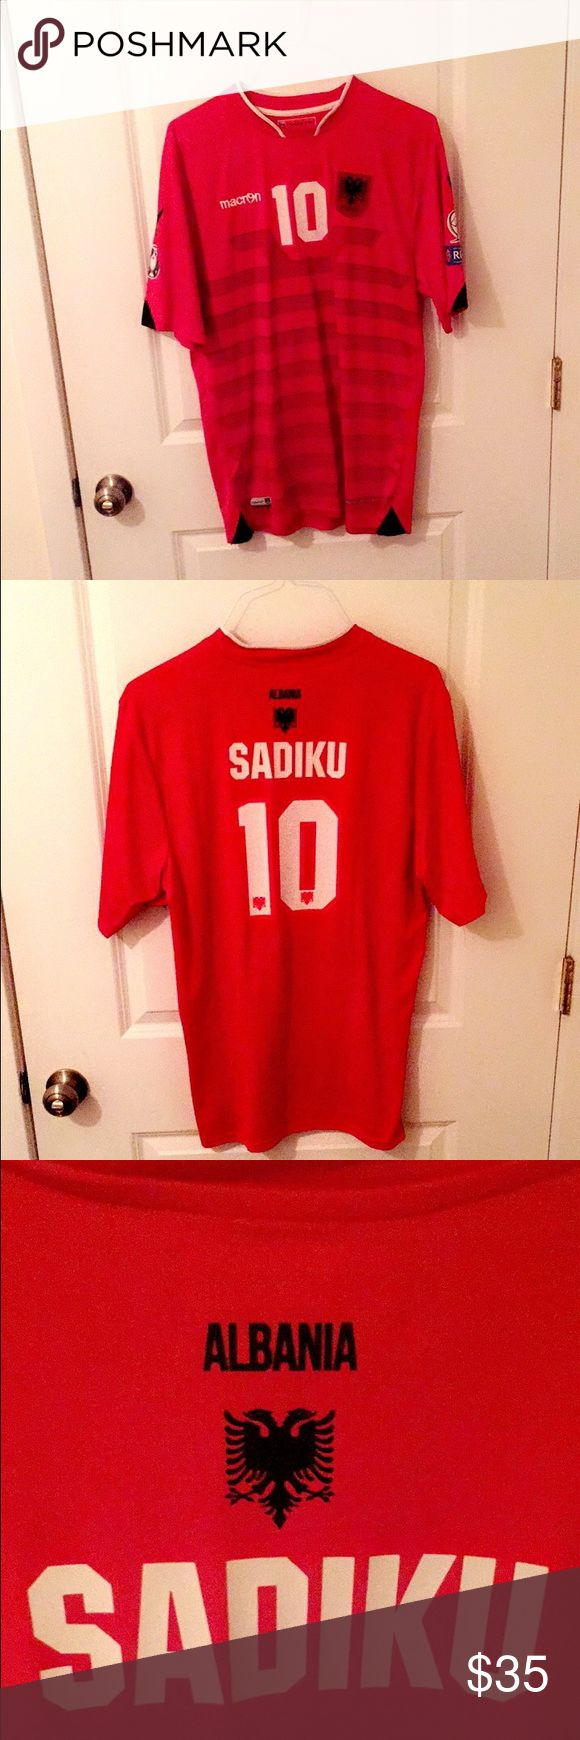 "OFFICIAL ALBANIAN NATIONAL SOCCER TEAM JERSEY OFFICIAL ALBANIAN NATIONAL SOCCER TEAM JERSEY ""SADIKU"" size Large •fits true to size •worn once like new •great material macron Shirts Tees - Short Sleeve"